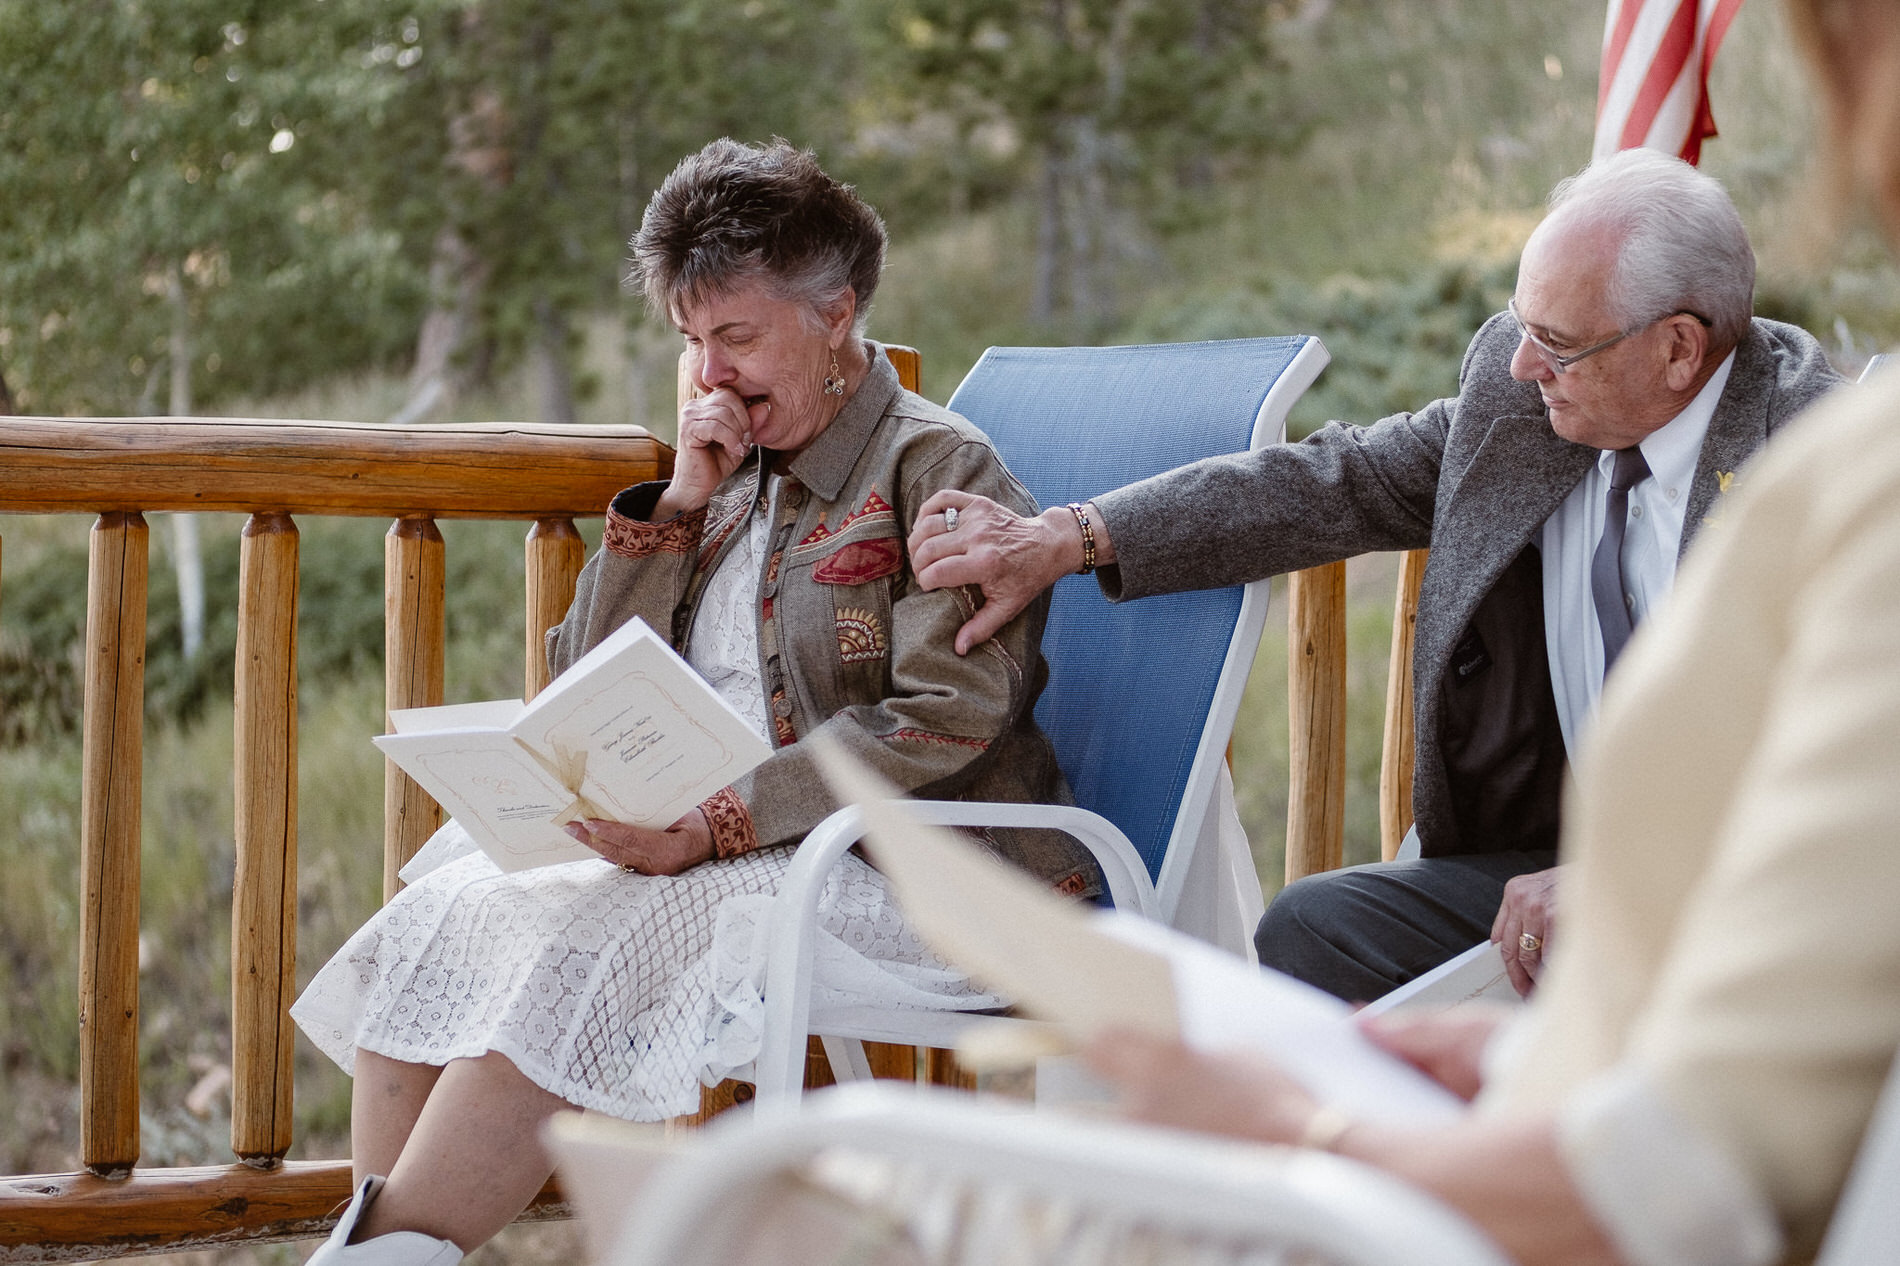 Groom's mother cries as she reads a poem during the elopement ceremony at Red Feather Lakes, CO